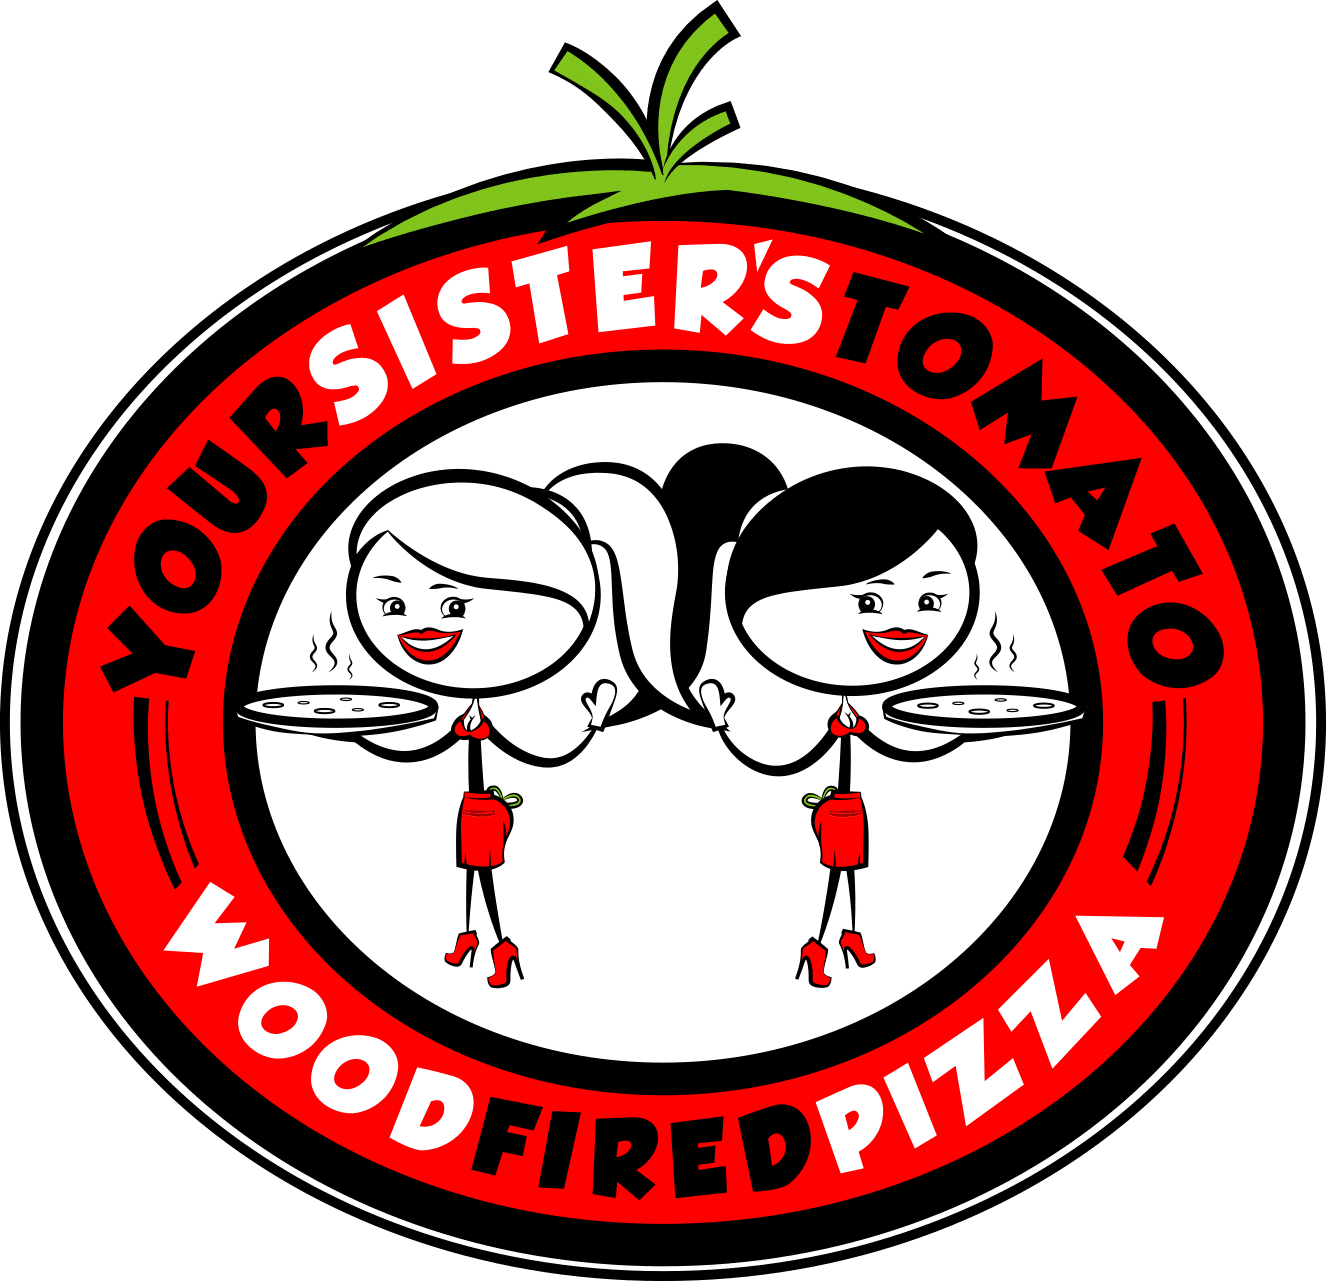 Your Sister's Tomato